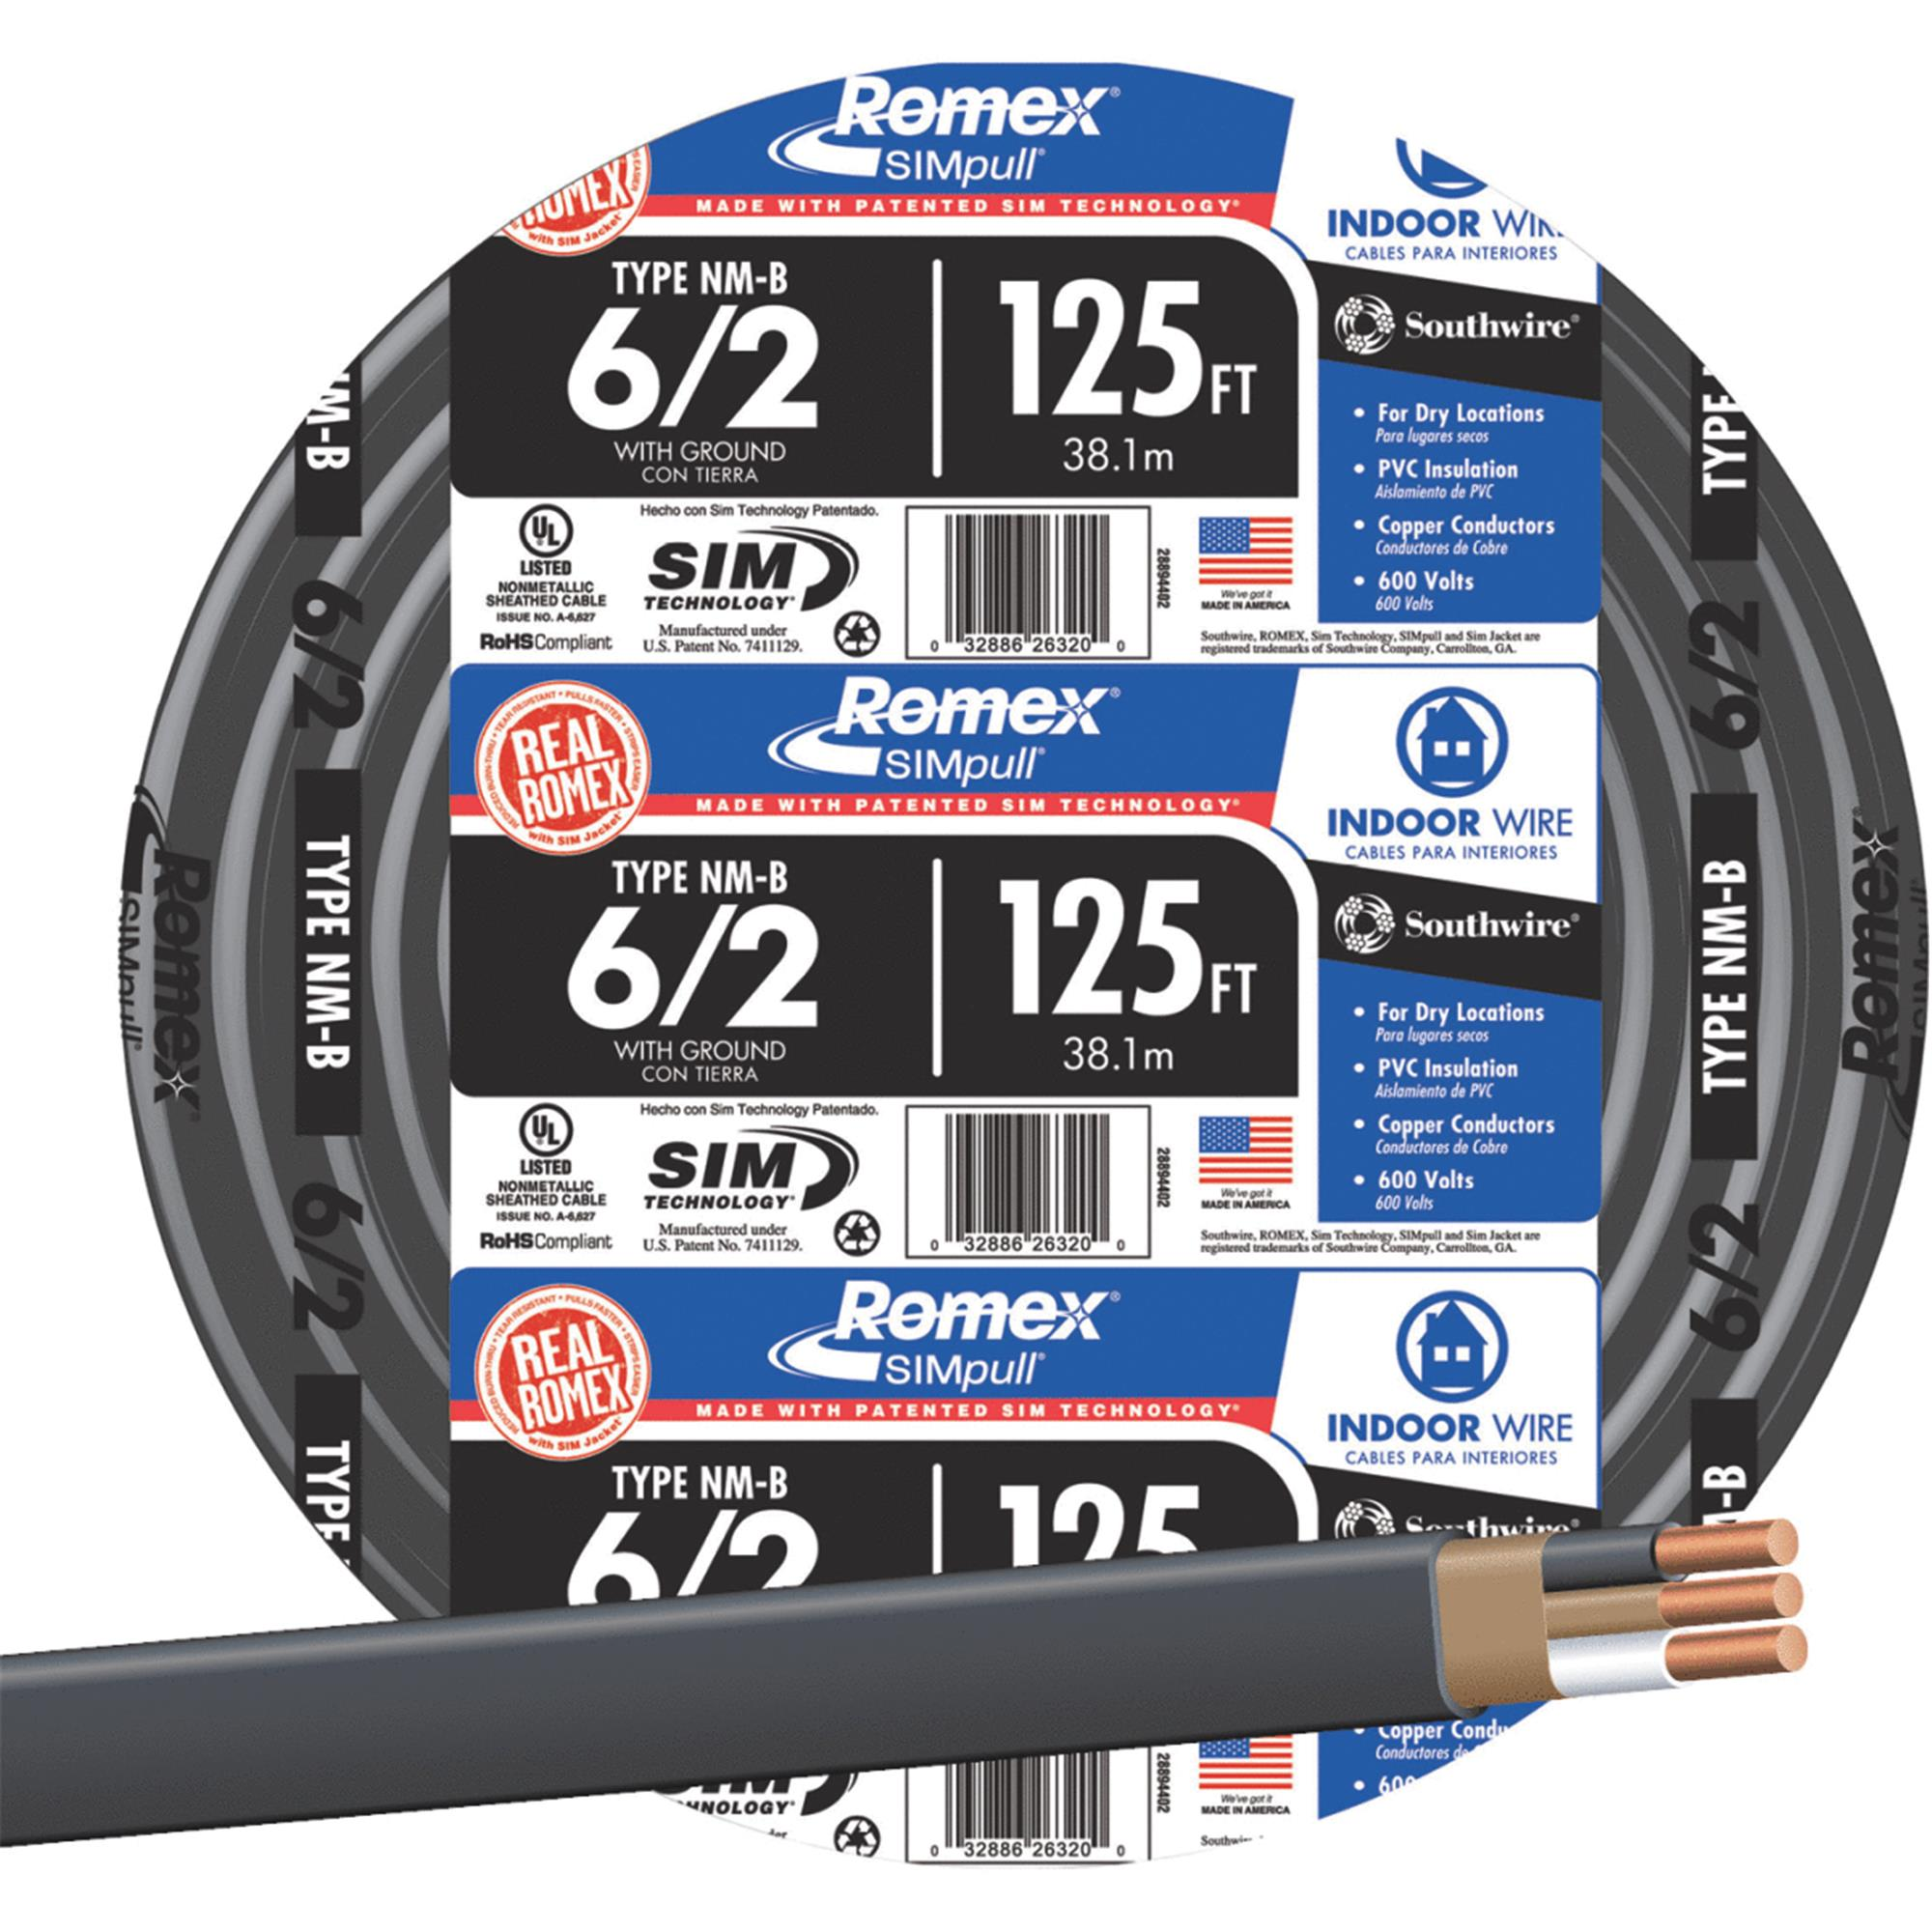 Southwire Romex 6-2 NMW/G Wire